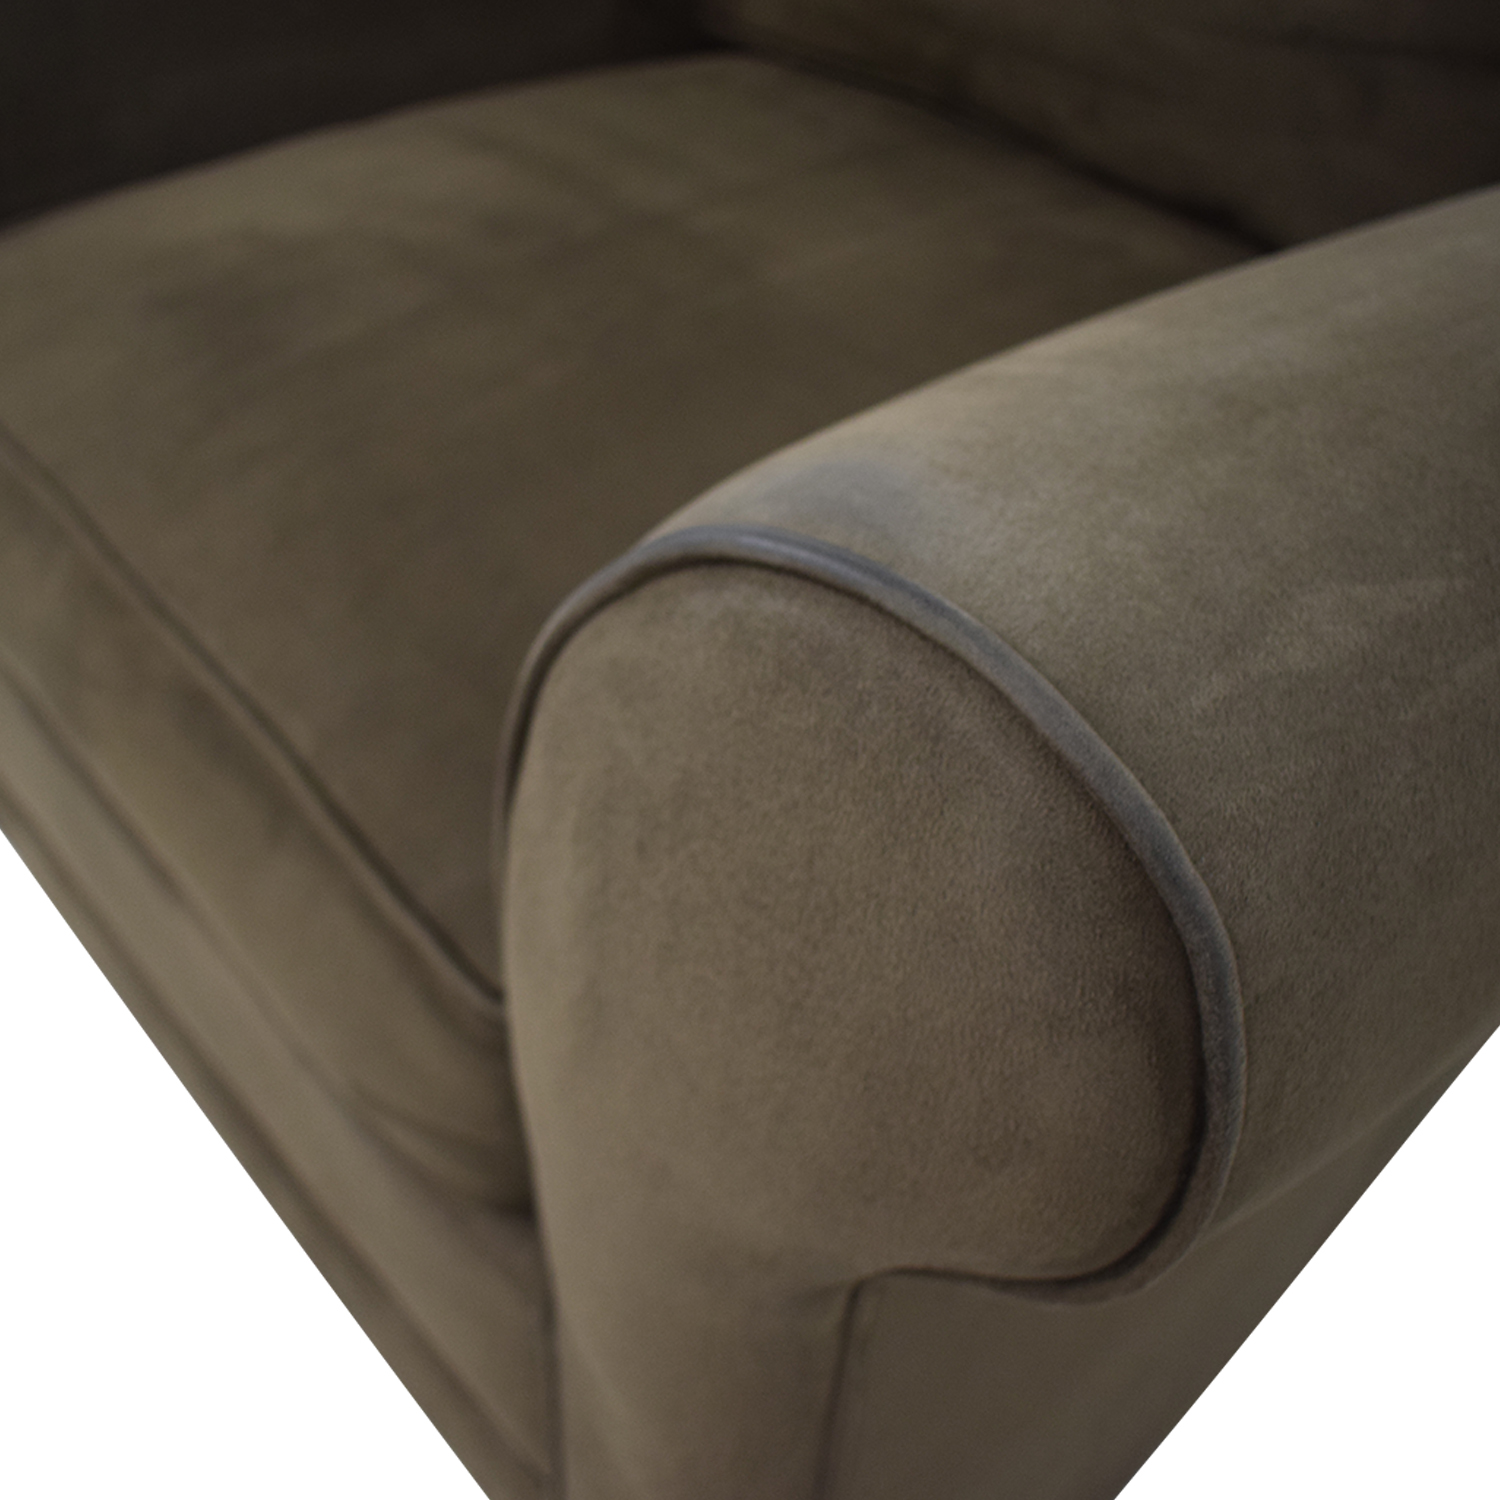 shop Raymour & Flanigan Raymour & Flanigan Brown Microfiber Accent Chair online